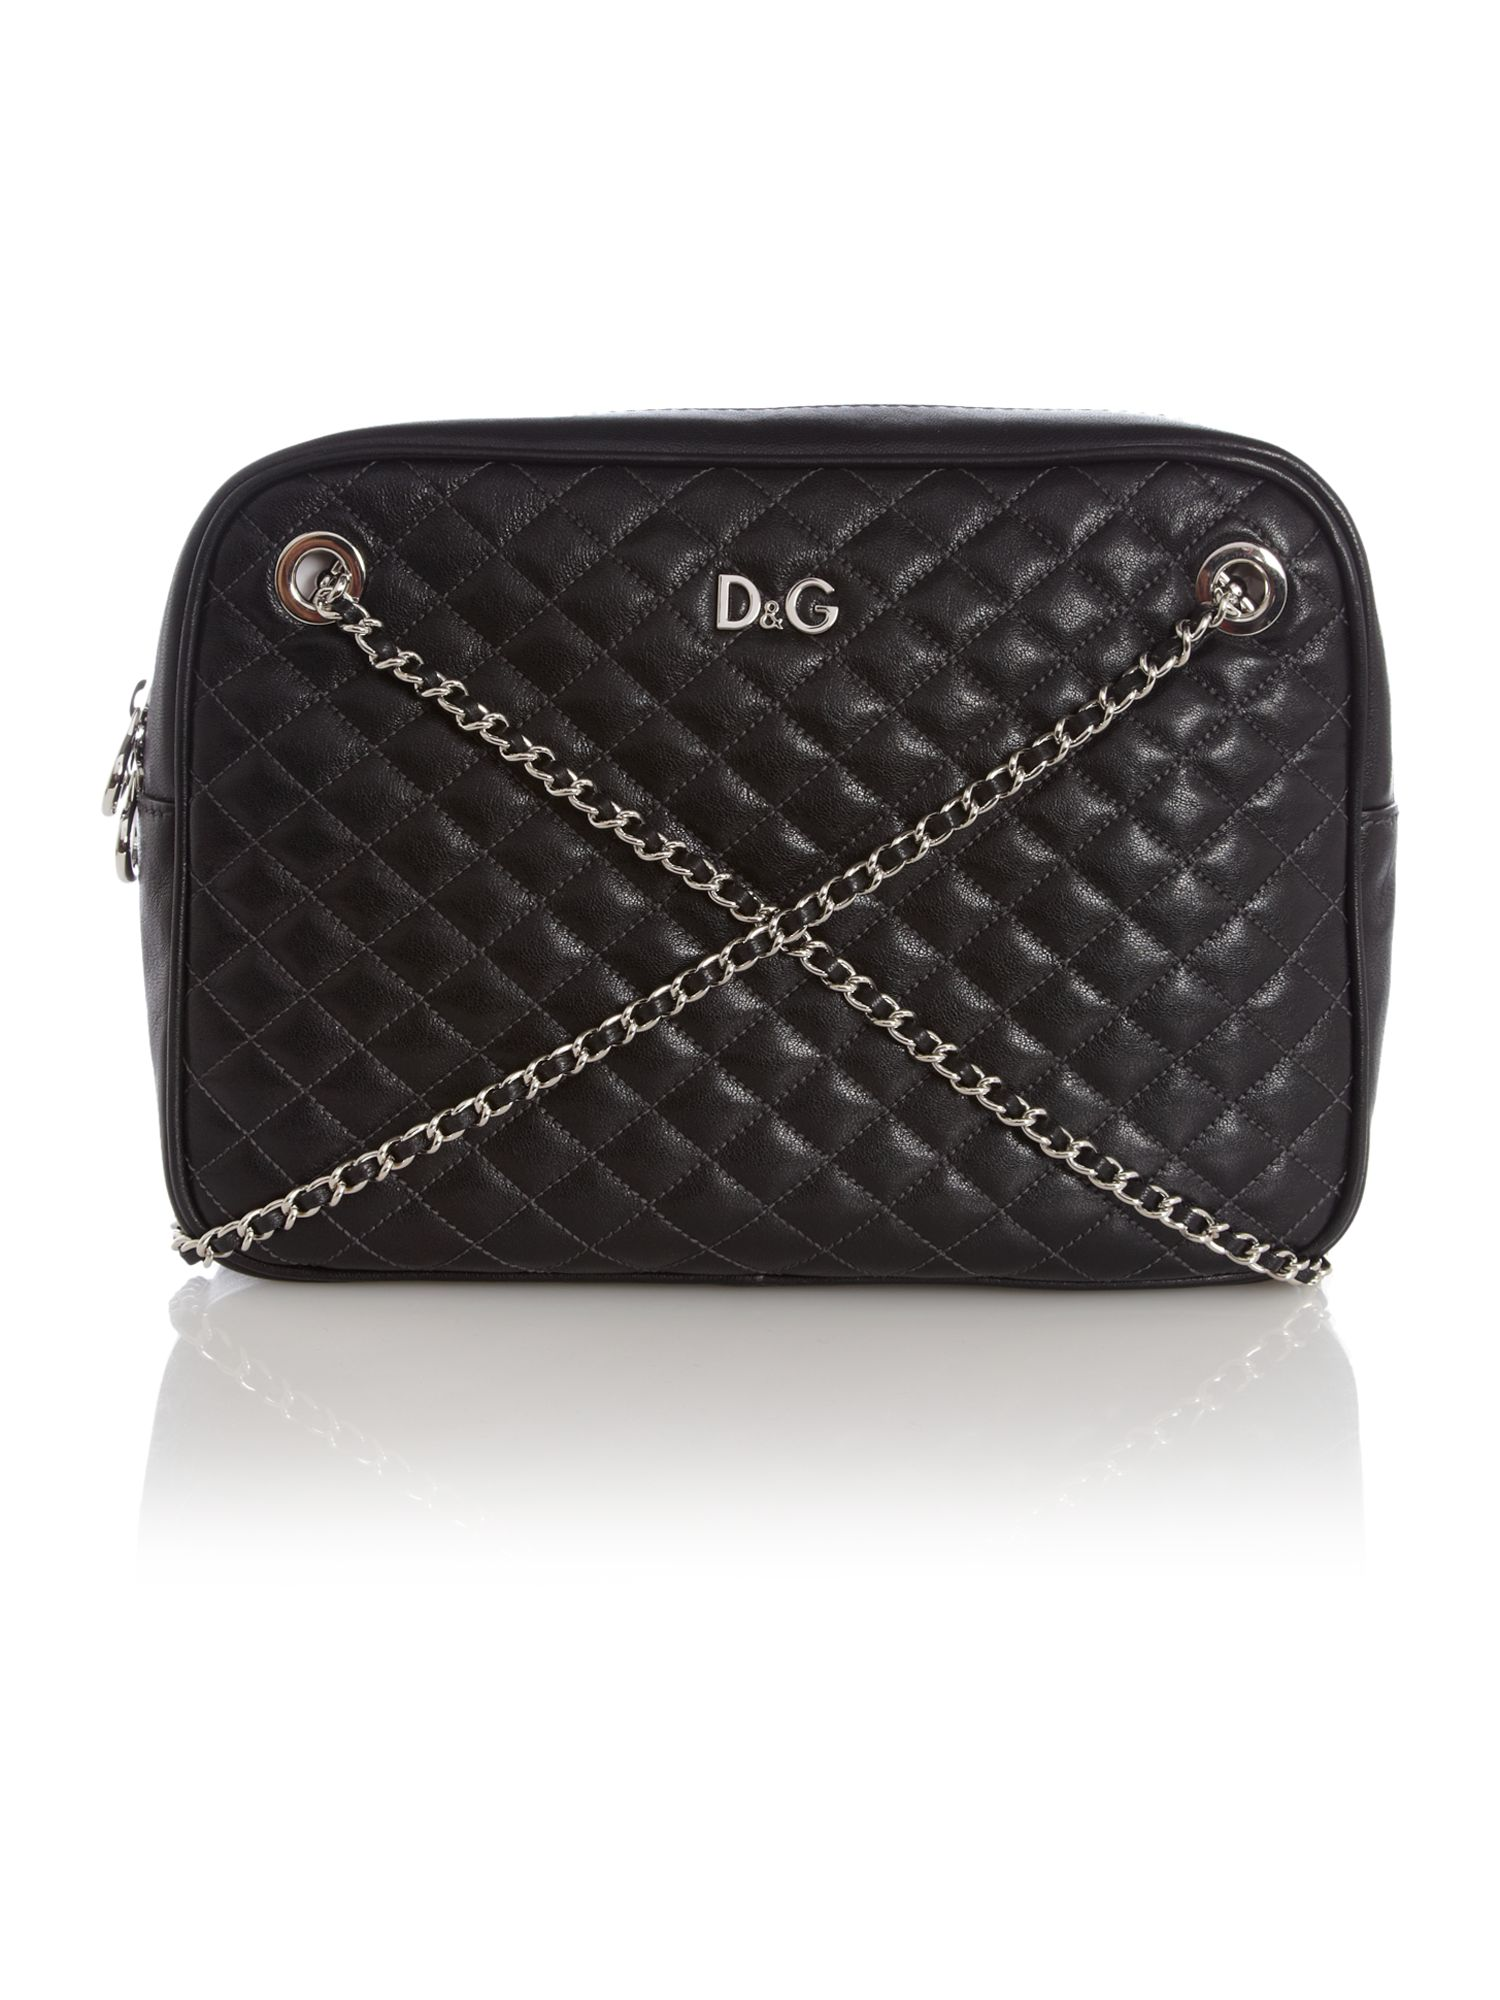 Black Lily Glam Quilted Zip Top Shoulder Bag By D&G 61